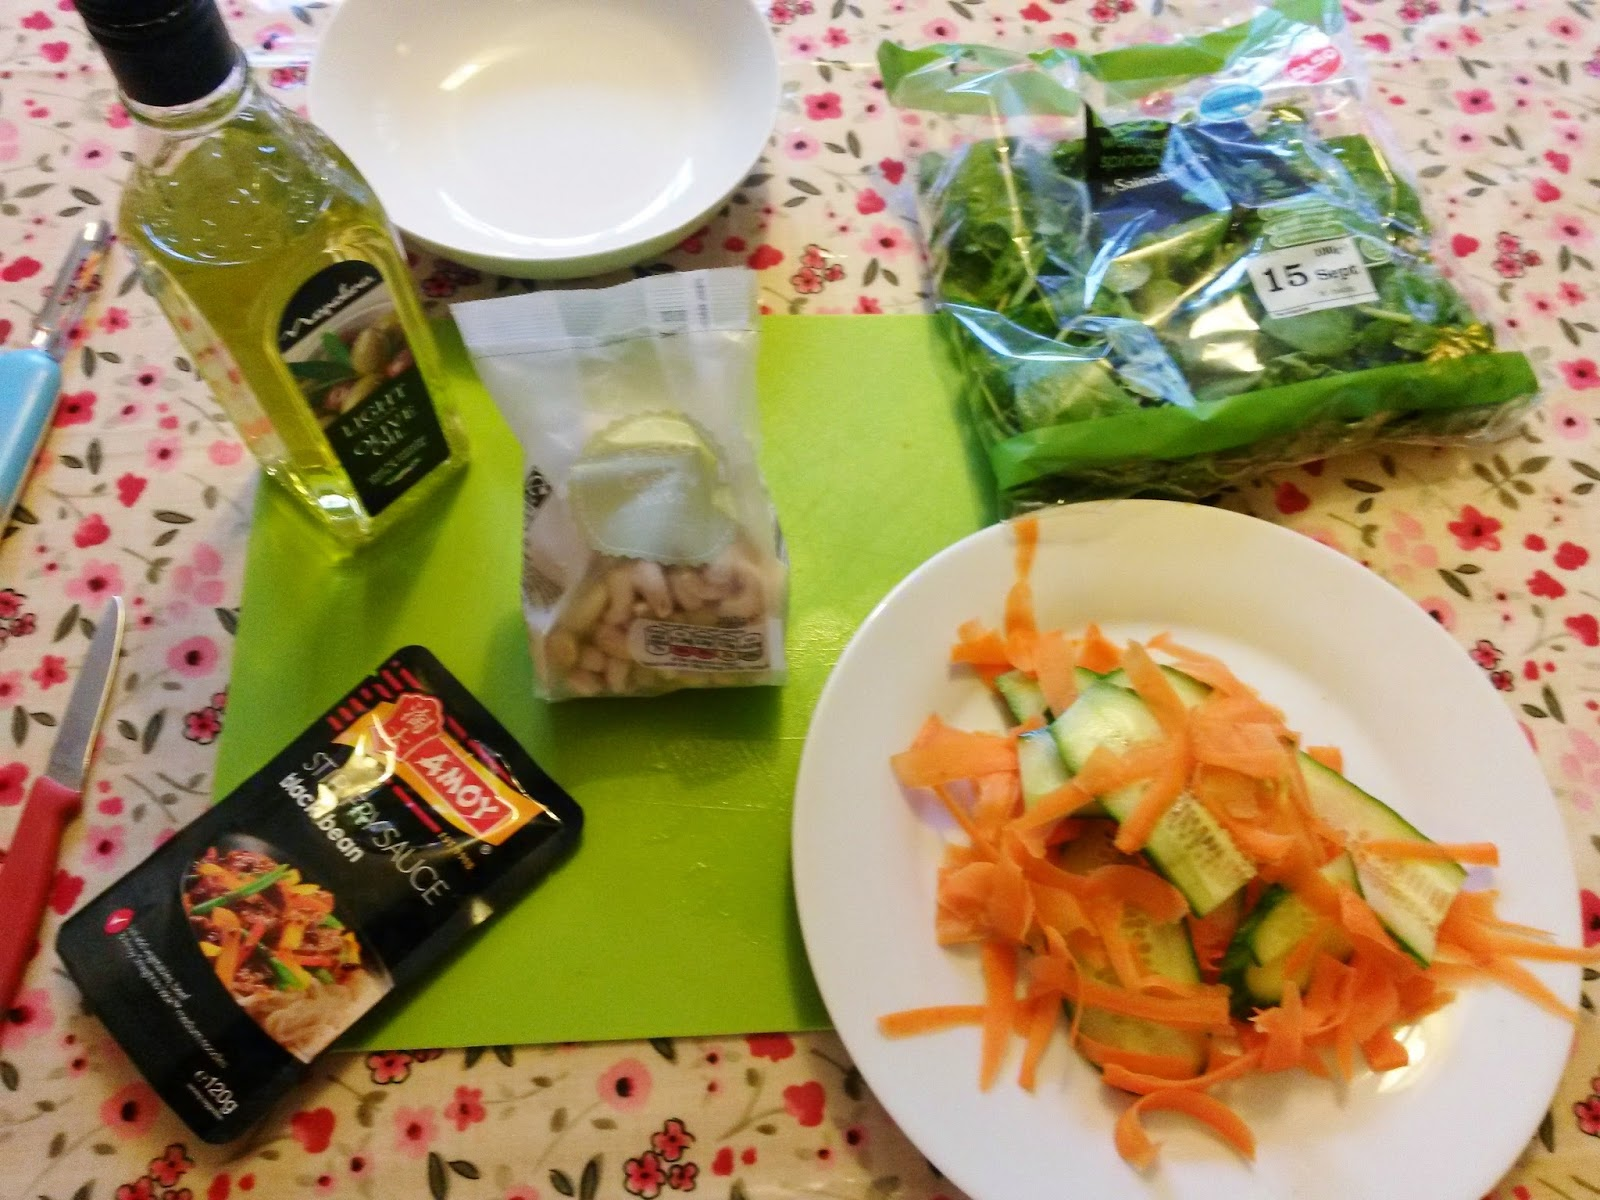 Simple Stir Fry - Carrots, Cucumber and Cashews